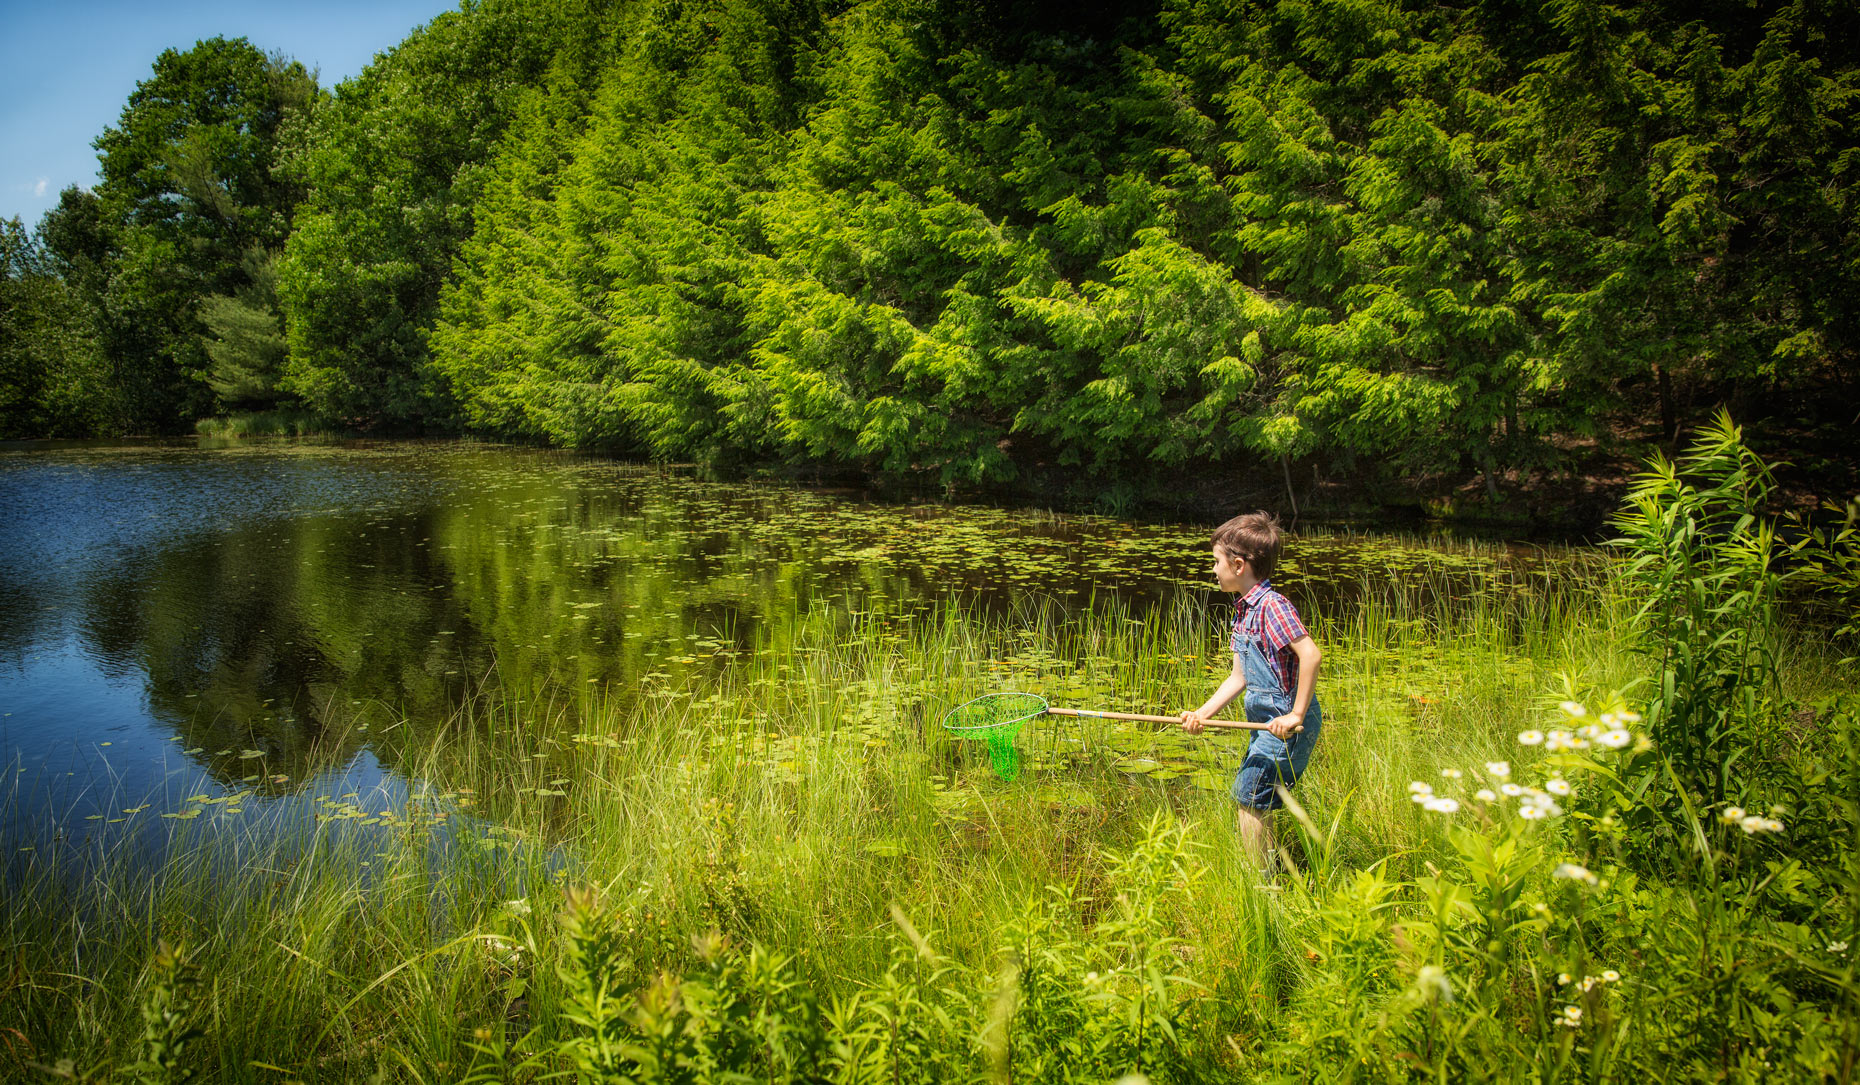 Young boy catching frogs at a pond in Cumberland, Maine in a series of photos for the Trust for Public Land